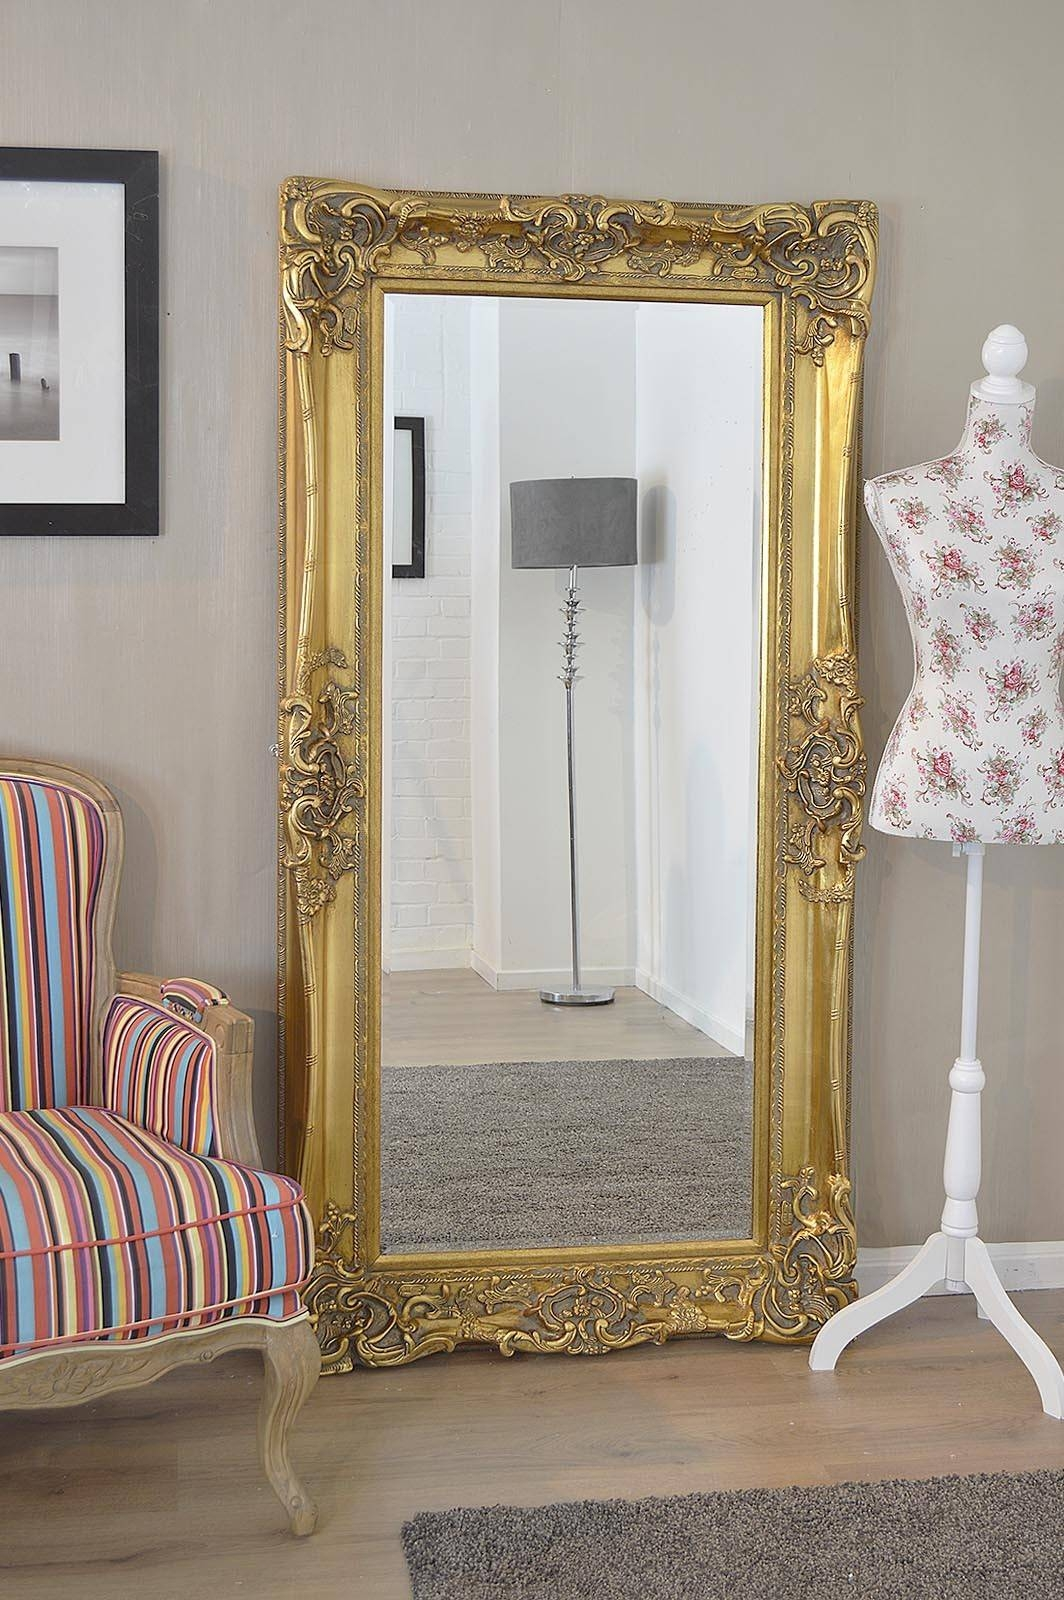 Giant Mirrors For Sale 126 Outstanding For Large Frame Gold with regard to Gold Antique Mirrors (Image 13 of 25)